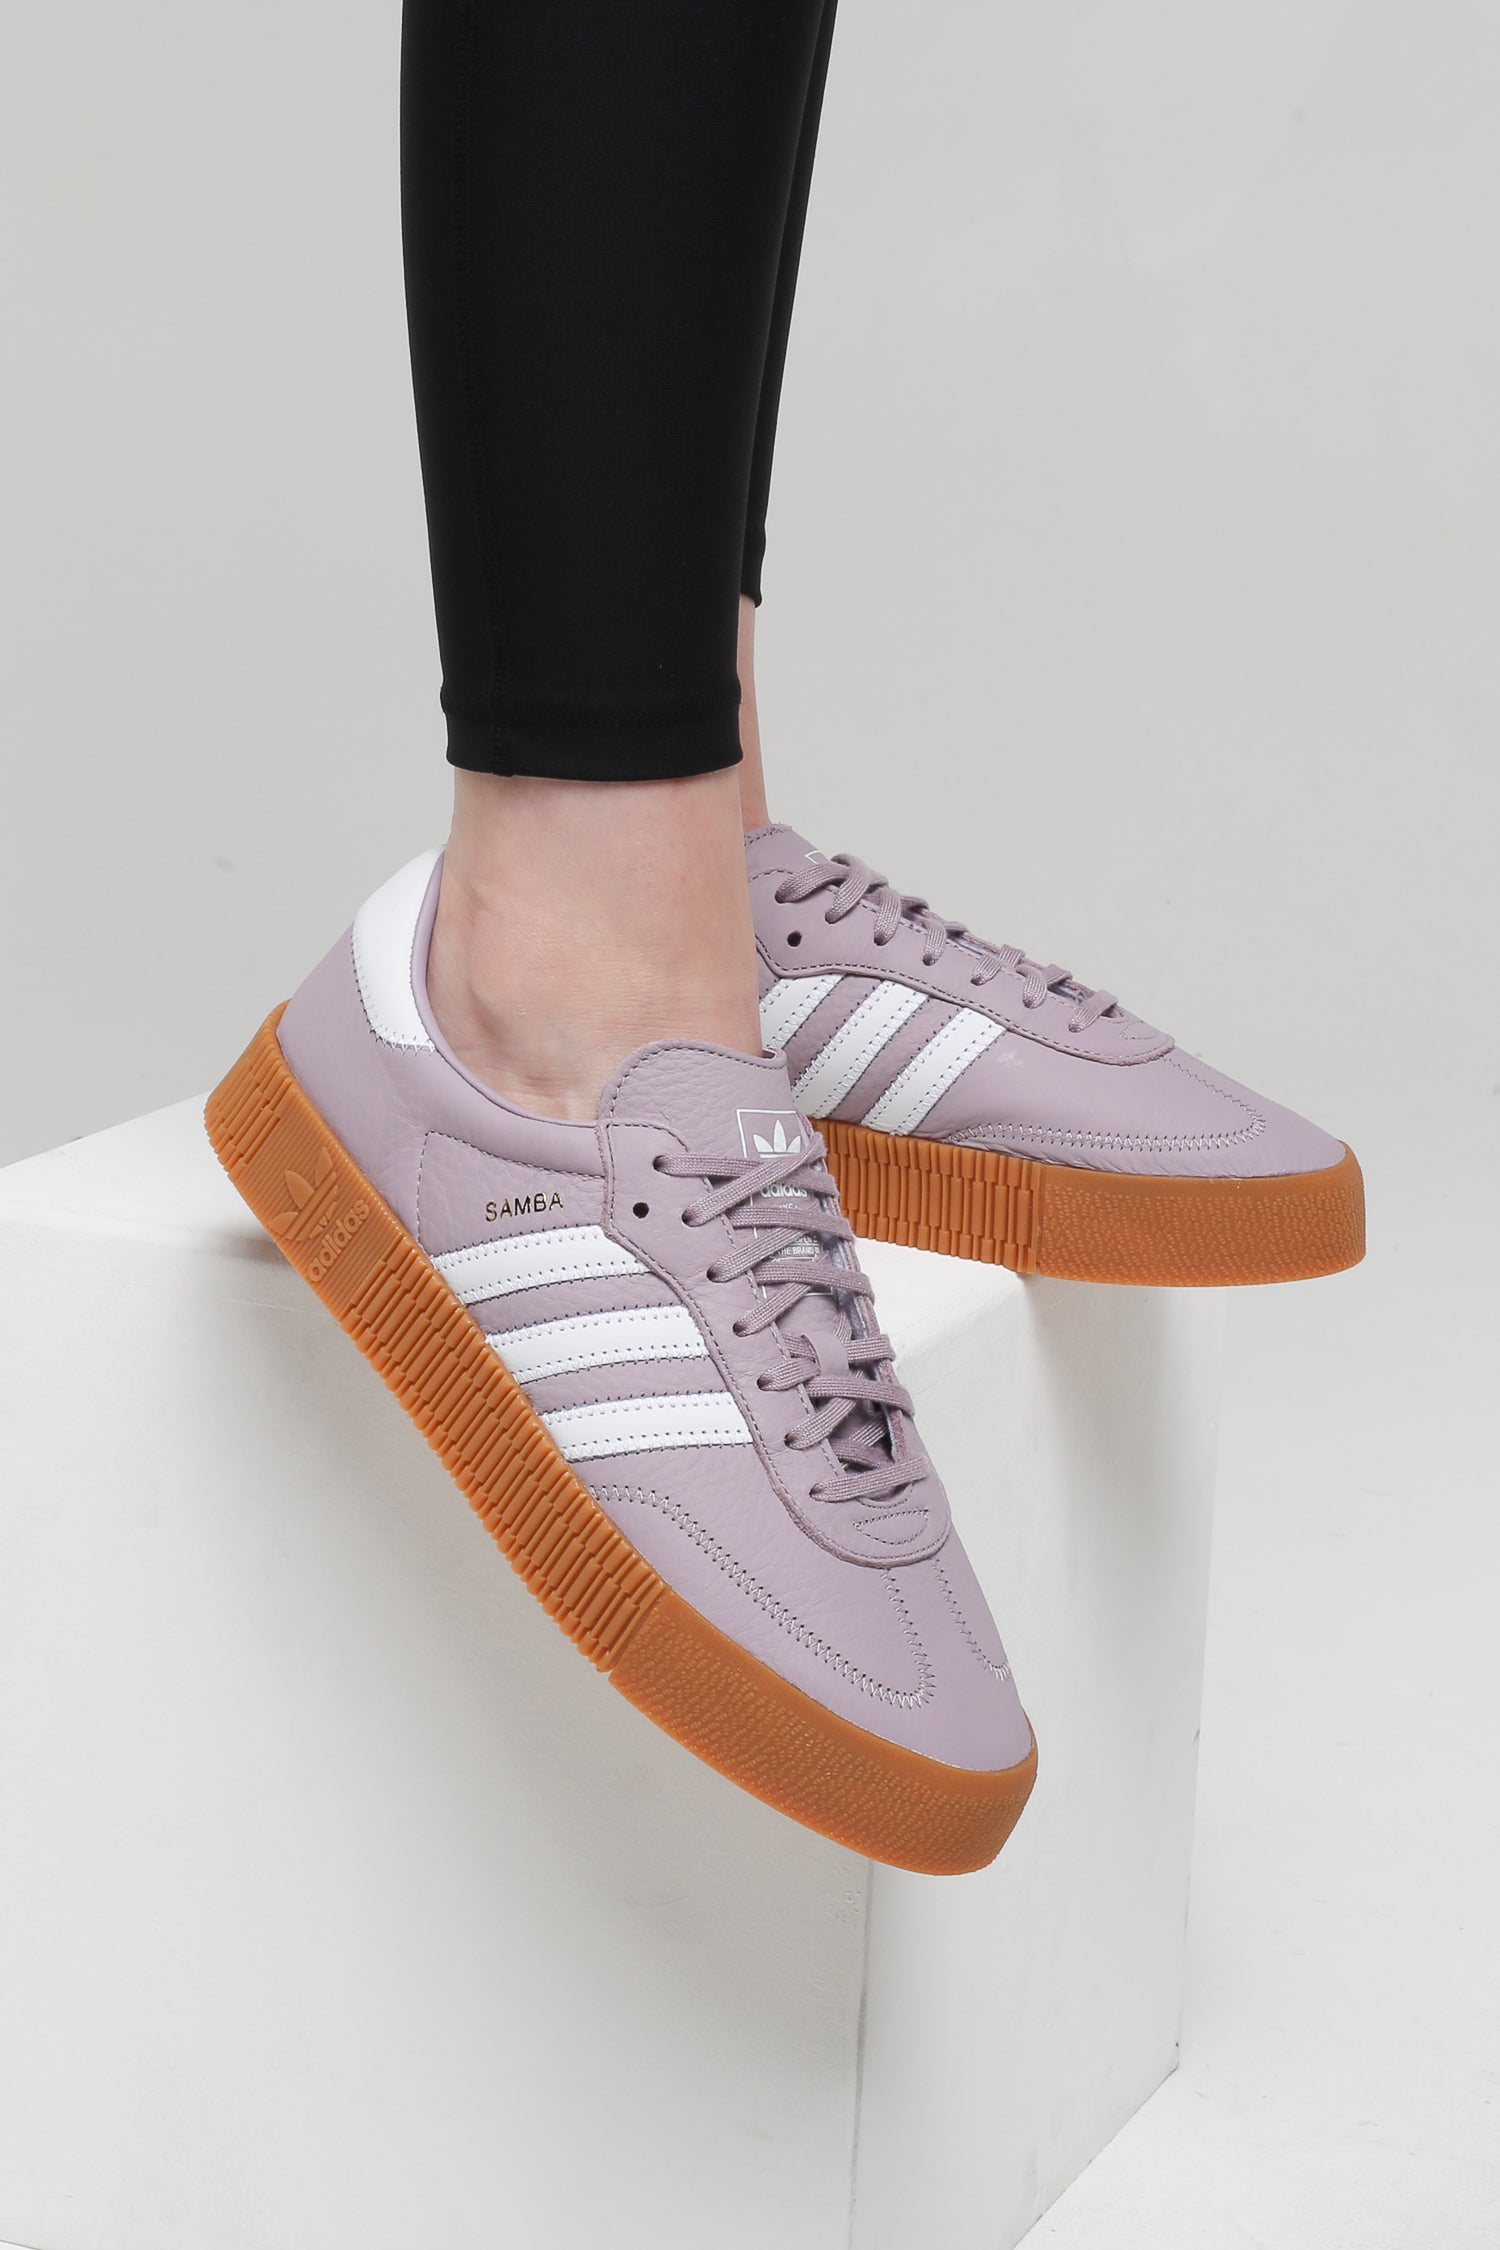 Details about adidas ORIGINALS WOMEN'S SAMBA ROSE SHOES PURPLE TRAINERS SNEAKERS LILAC RETRO